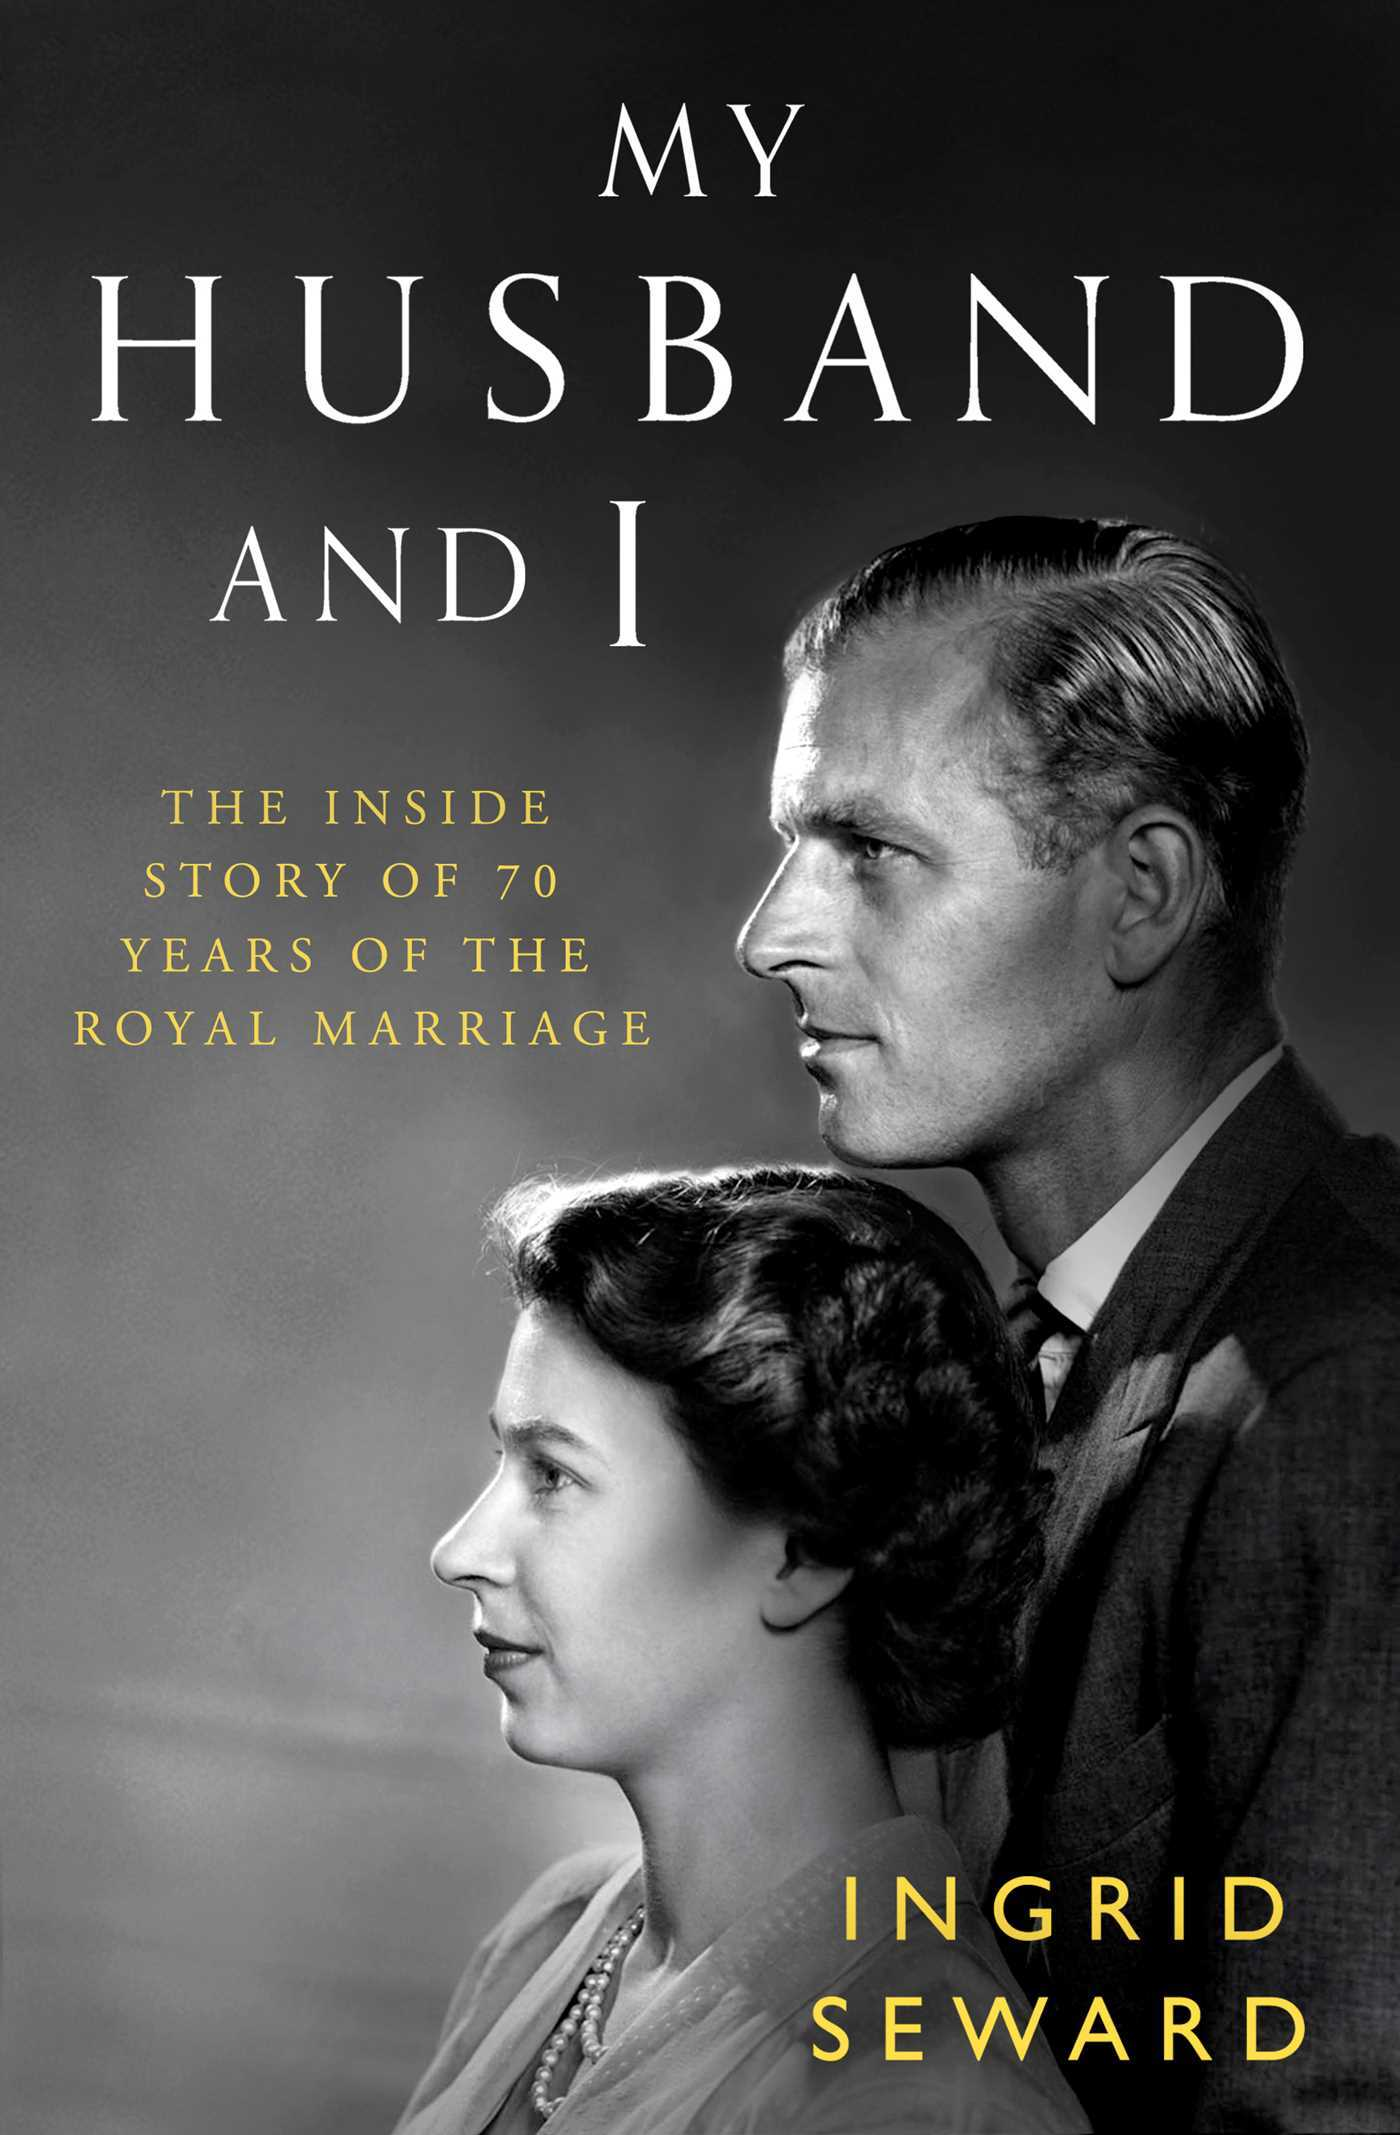 My Husband and I The Inside Story of 70 Years of the Royal Marriage